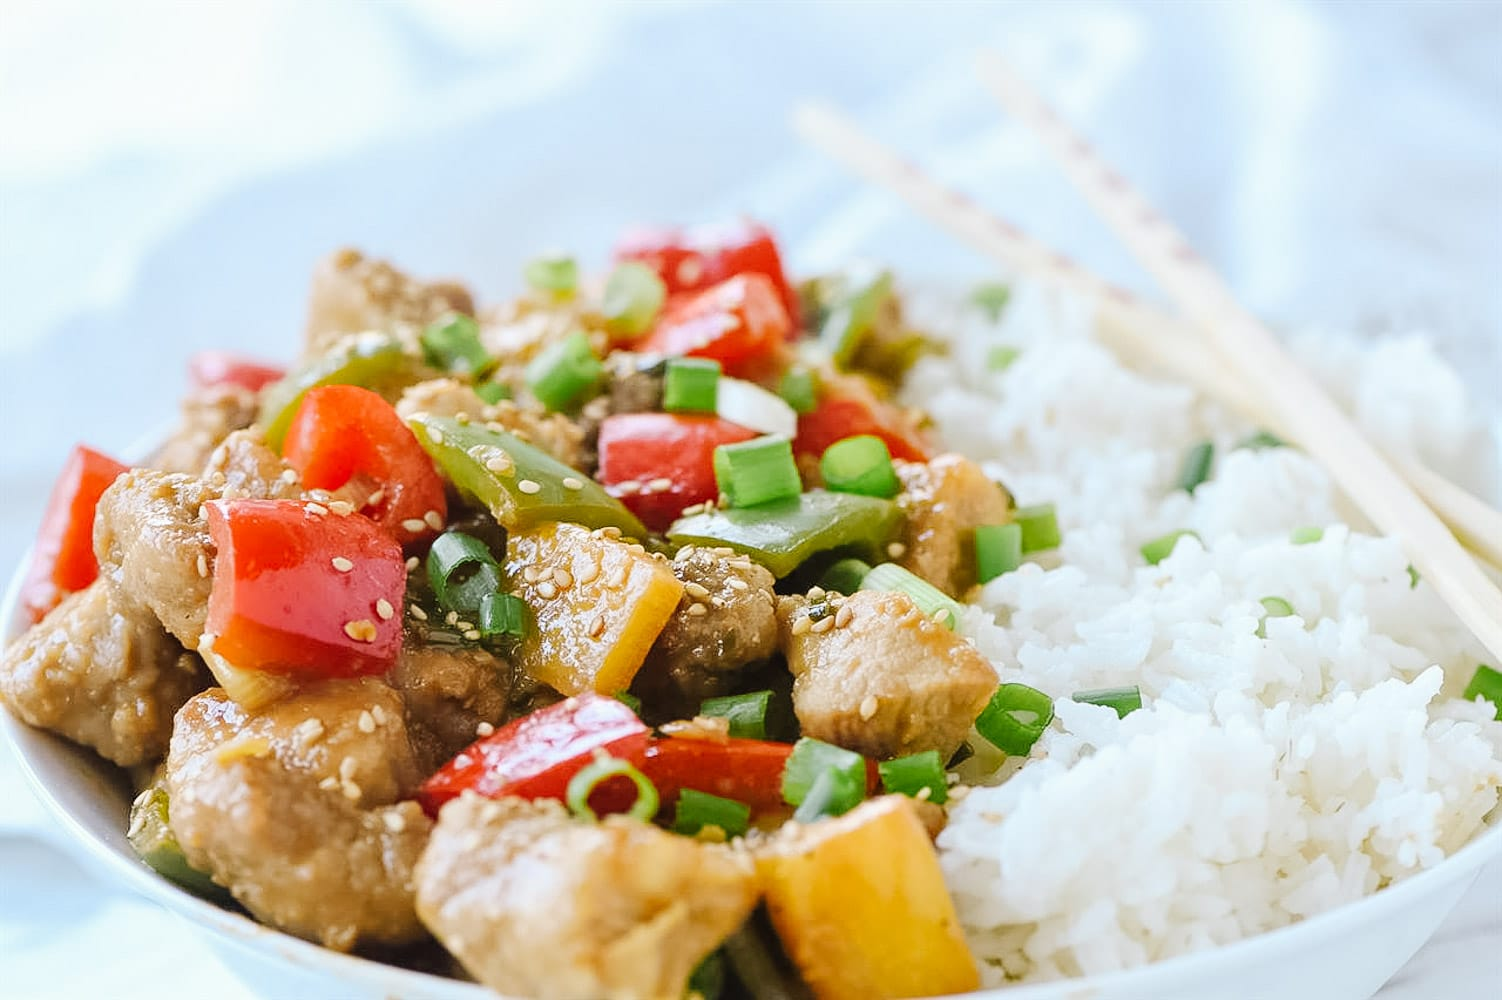 sweet and sour pork and rice in a bowl